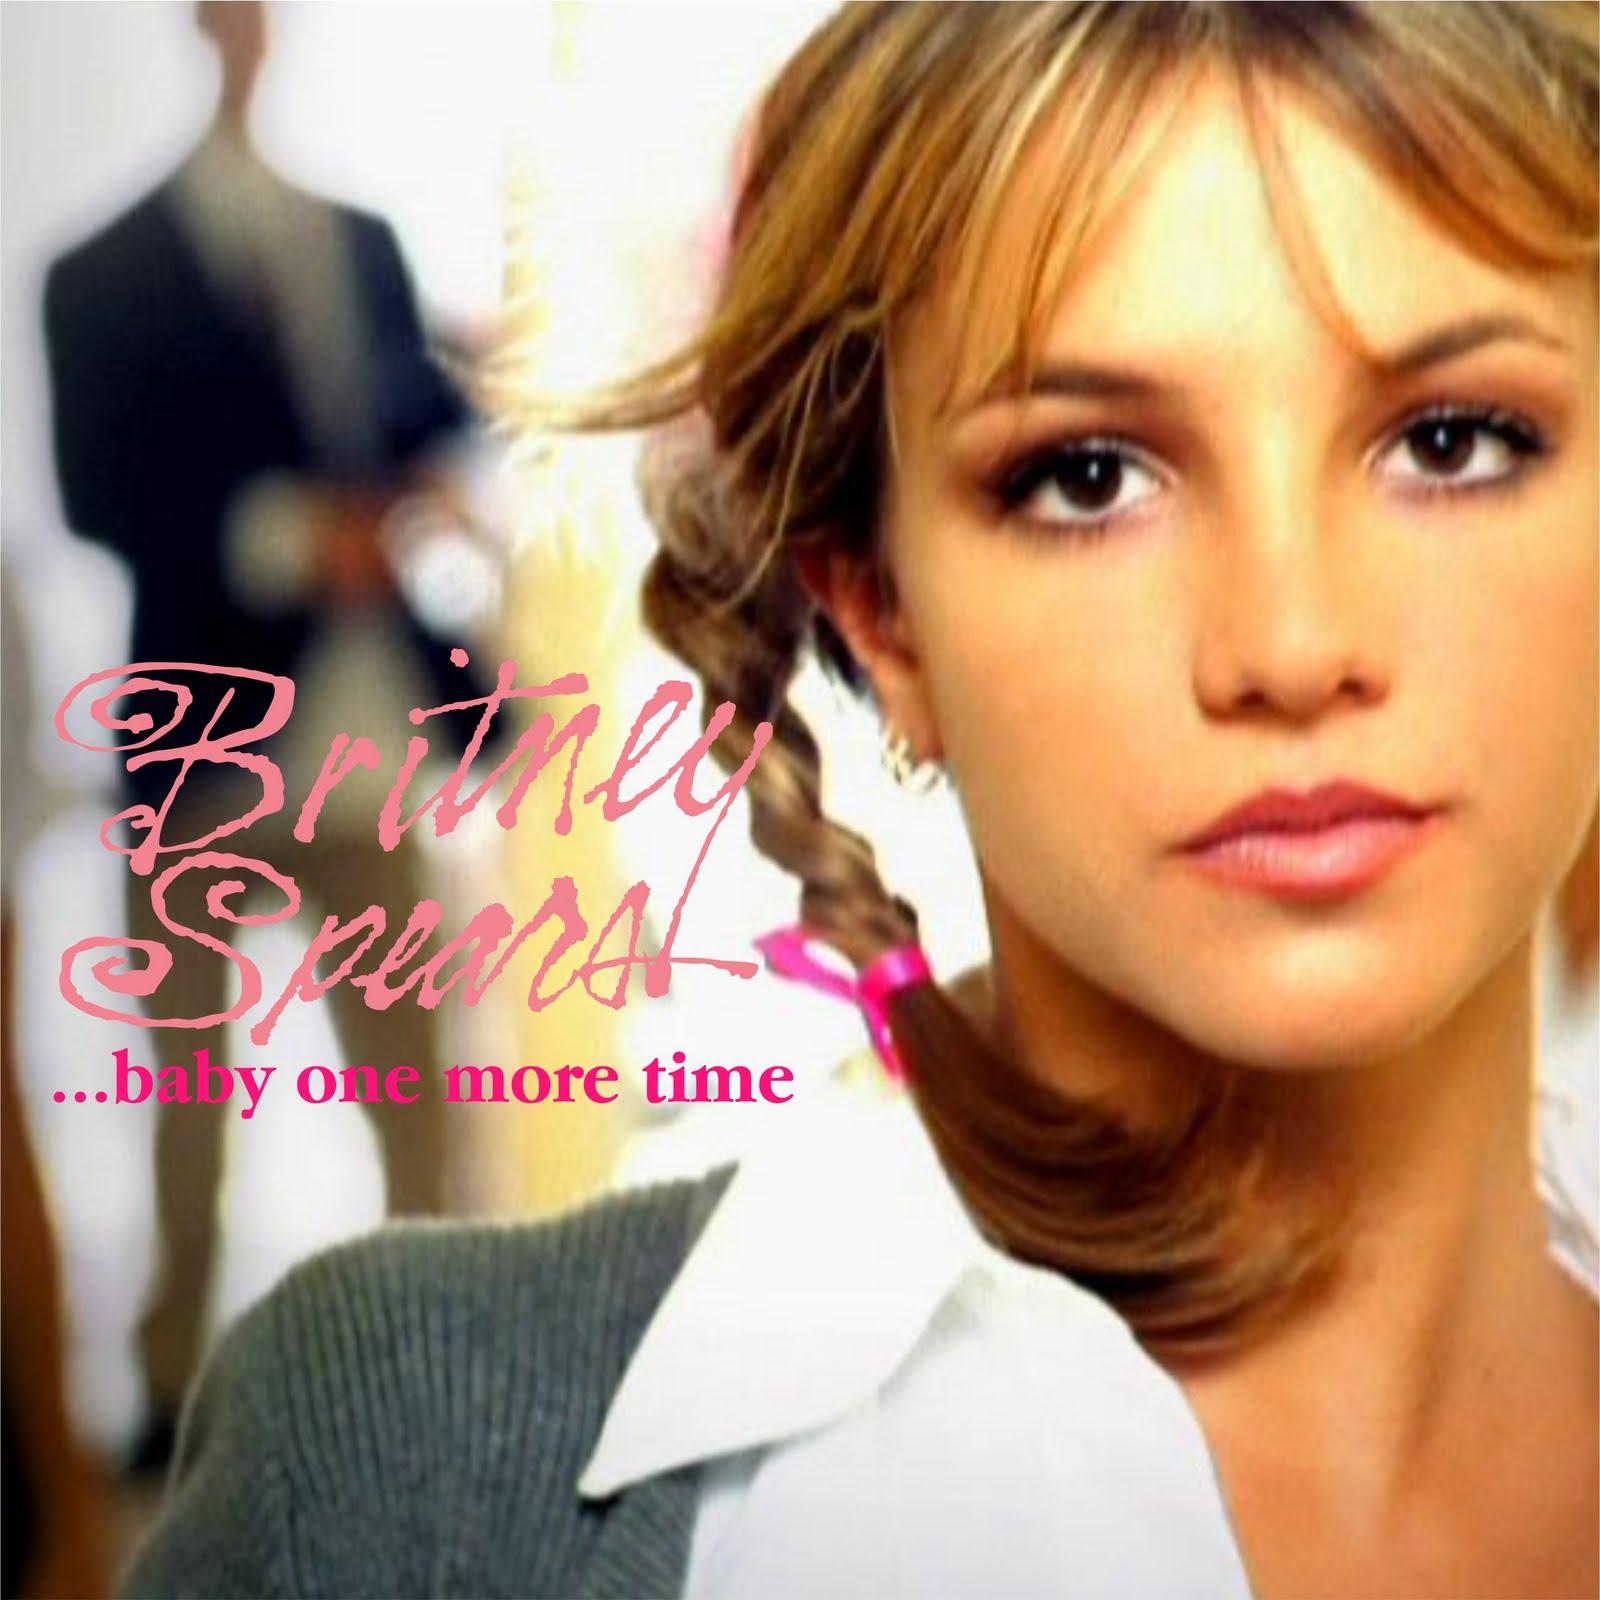 baby one more timeBritney Spears Baby One More Time Album Cover